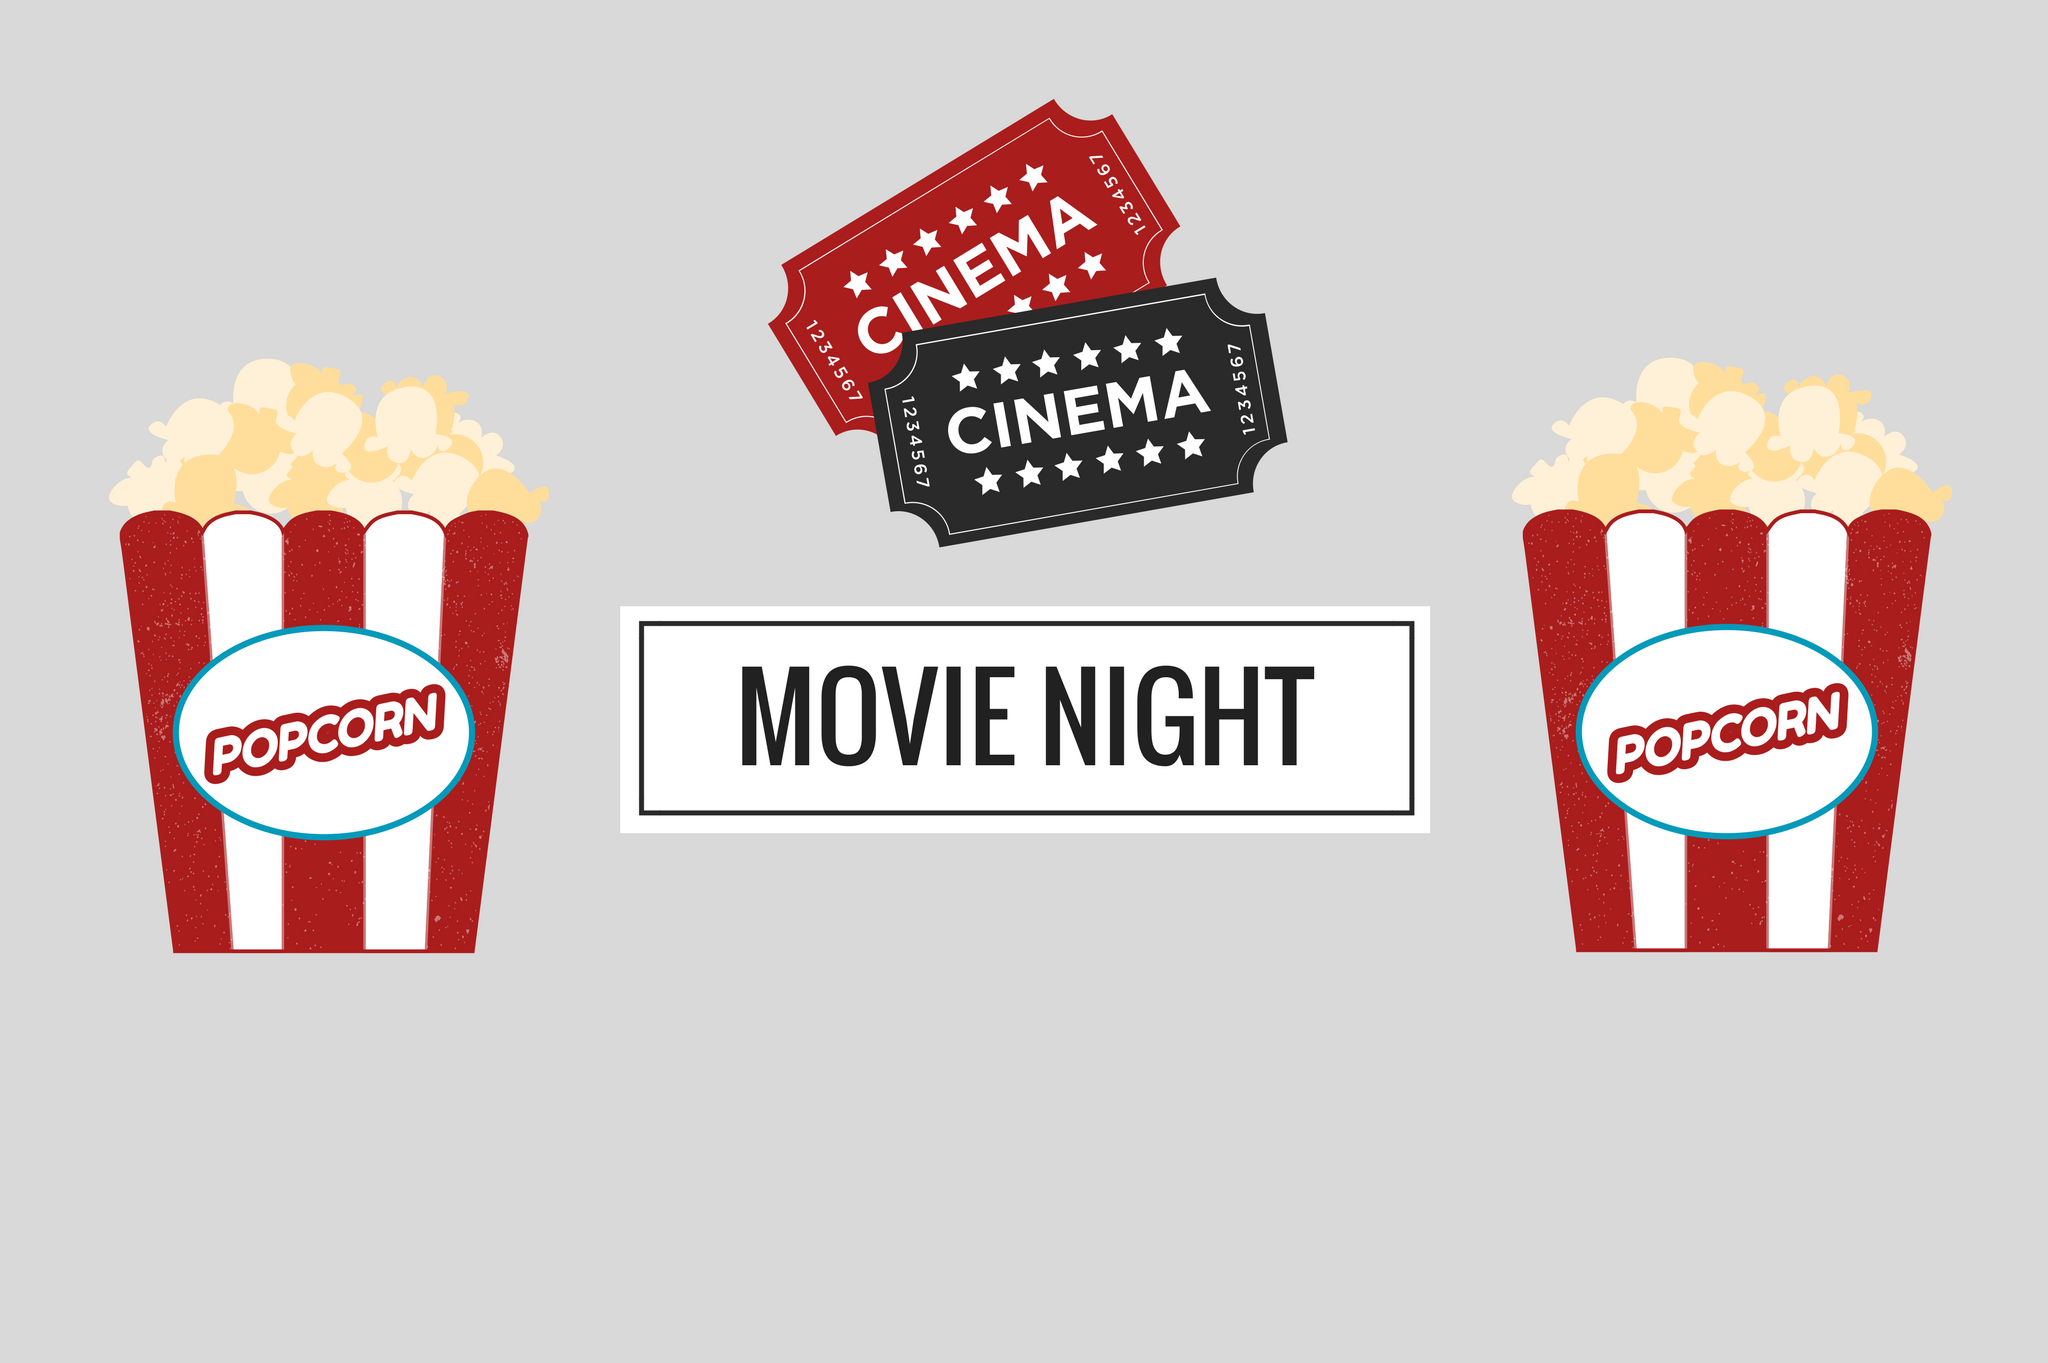 movies to watch movie guide movie night cinema at home netflix and chill